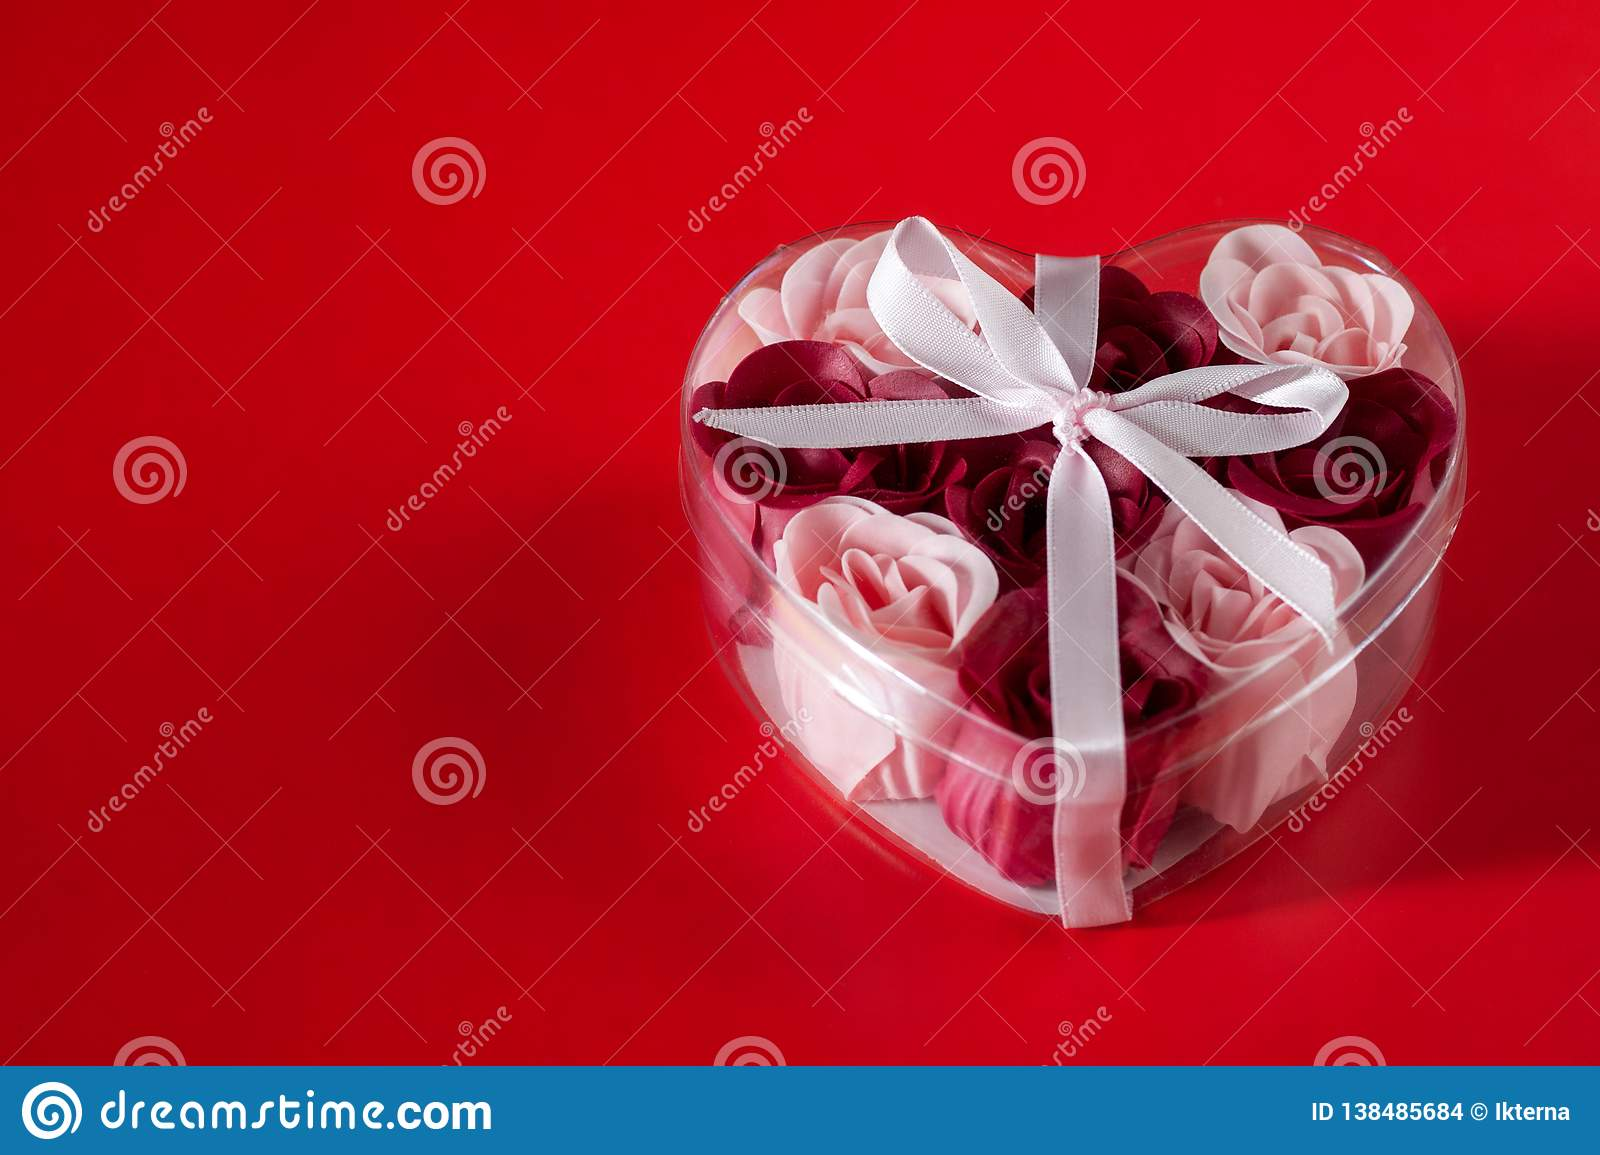 910 Valentine Soap Gift Photos Free Royalty Free Stock Photos From Dreamstime